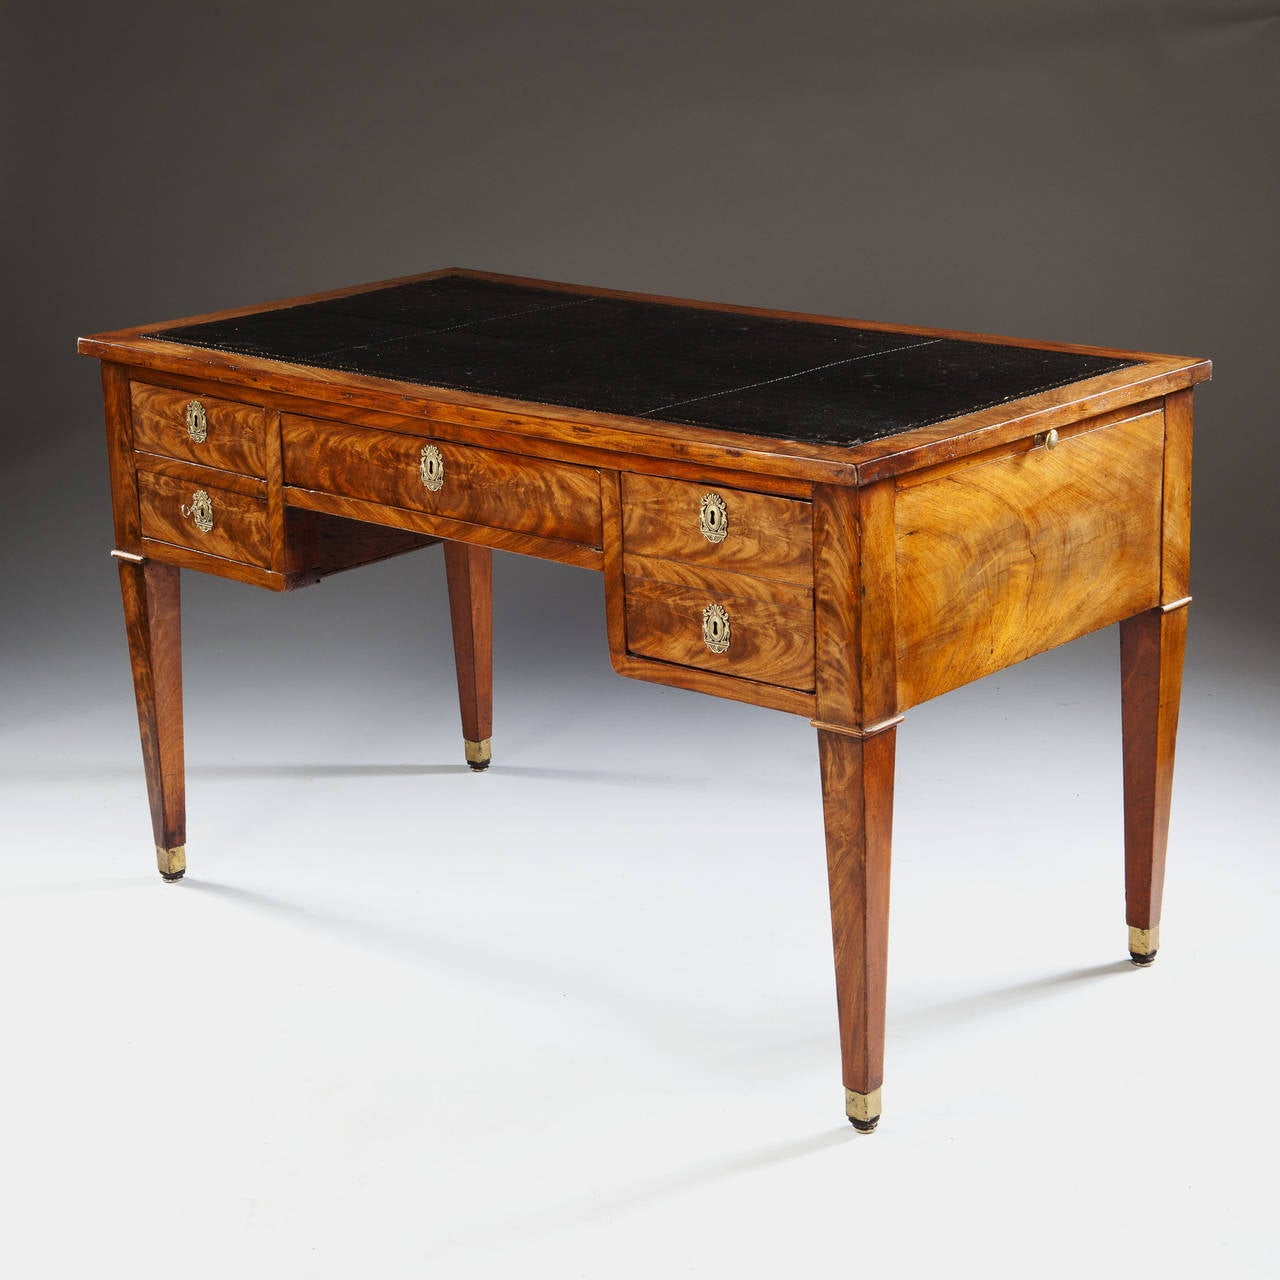 Fine 19th Century French Directoire Bureau Plat Writing Table or